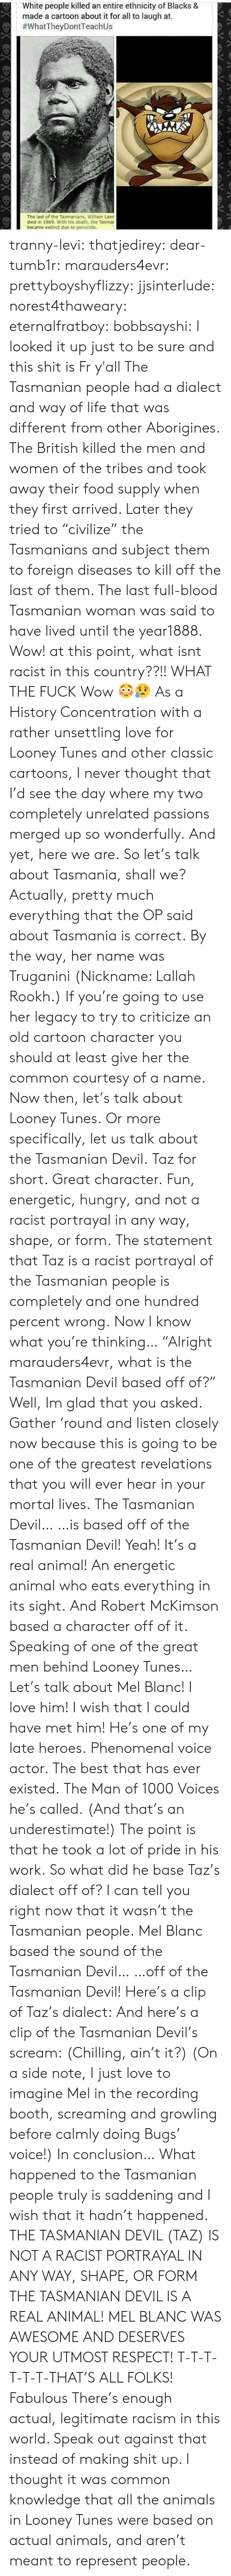 "taz: White people killed an entire ethnicity of Blacks &  made a cartoon about it for all to laugh at.  #whatTheyDontTeach Us  The last of the Tasmanians, William Lanr  died in 1869. With his death, the Tasma  became extinct due to genocide. tranny-levi:  thatjedirey:   dear-tumb1r:  marauders4evr:  prettyboyshyflizzy:  jjsinterlude:  norest4thaweary:  eternalfratboy:  bobbsayshi:  I looked it up just to be sure and this shit is Fr y'all The Tasmanian people had a dialect and way of life that was different from other Aborigines. The British killed the men and women of the tribes and took away their food supply when they first arrived. Later they tried to ""civilize"" the Tasmanians and subject them to foreign diseases to kill off the last of them. The last full-blood Tasmanian woman was said to have lived until the year1888.  Wow!  at this point, what isnt racist in this country??!!  WHAT THE FUCK  Wow 😳😥   As a History Concentration with a rather unsettling love for Looney Tunes and other classic cartoons, I never thought that I'd see the day where my two completely unrelated passions merged up so wonderfully. And yet, here we are. So let's talk about Tasmania, shall we? Actually, pretty much everything that the OP said about Tasmania is correct. By the way, her name was Truganini (Nickname:   Lallah Rookh.) If you're going to use her legacy to try to criticize an old cartoon character you should at least give her the common courtesy of a name. Now then, let's talk about Looney Tunes. Or more specifically, let us talk about the Tasmanian Devil. Taz for short. Great character. Fun, energetic, hungry, and not a racist portrayal in any way, shape, or form. The statement that Taz is a racist portrayal of the Tasmanian people is completely and one hundred percent wrong. Now I know what you're thinking… ""Alright marauders4evr, what is the Tasmanian Devil based off of?"" Well, Im glad that you asked. Gather 'round and listen closely now because this is going to be one of the greatest revelations that you will ever hear in your mortal lives. The Tasmanian Devil… …is based off of the Tasmanian Devil! Yeah! It's a real animal! An energetic animal who eats everything in its sight. And Robert McKimson based a character off of it. Speaking of one of the great men behind Looney Tunes… Let's talk about Mel Blanc! I love him! I wish that I could have met him! He's one of my late heroes. Phenomenal voice actor. The best that has ever existed. The Man of 1000 Voices he's called. (And that's an underestimate!) The point is that he took a lot of pride in his work. So what did he base Taz's dialect off of? I can tell you right now that it wasn't the Tasmanian people. Mel Blanc based the sound of the Tasmanian Devil… …off of the Tasmanian Devil! Here's a clip of Taz's dialect: And here's a clip of the Tasmanian Devil's scream: (Chilling, ain't it?) (On a side note, I just love to imagine Mel in the recording booth, screaming and growling before calmly doing Bugs' voice!) In conclusion… What happened to the Tasmanian people truly is saddening and I wish that it hadn't happened. THE TASMANIAN DEVIL (TAZ) IS NOT A RACIST PORTRAYAL IN ANY WAY, SHAPE, OR FORM THE TASMANIAN DEVIL IS A REAL ANIMAL! MEL BLANC WAS AWESOME AND DESERVES YOUR UTMOST RESPECT! T-T-T-T-T-T-THAT'S ALL FOLKS!  Fabulous   There's enough actual, legitimate racism in this world. Speak out against that instead of making shit up.    I thought it was common knowledge that all the animals in Looney Tunes were based on actual animals, and aren't meant to represent people."